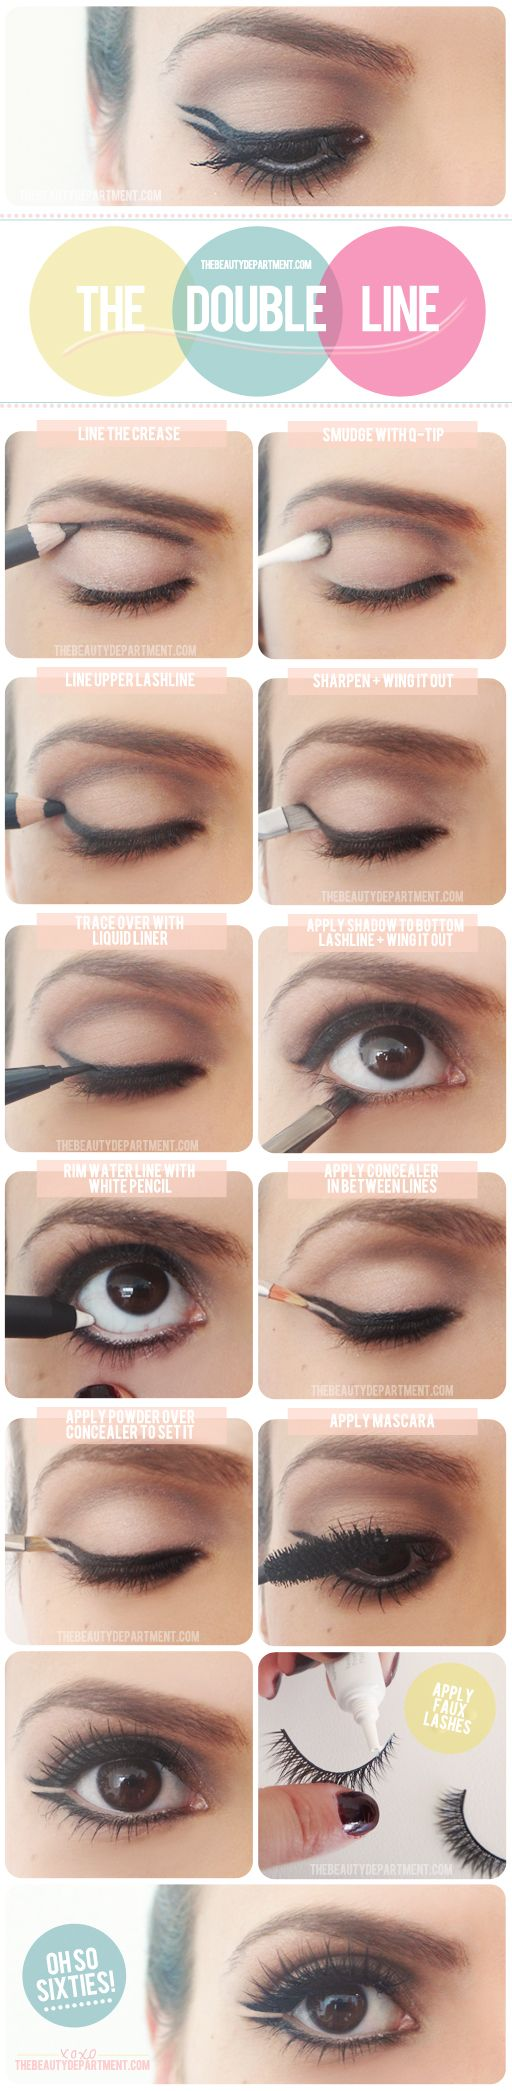 Double eyeliner tutorial for a retro-chic makeup look